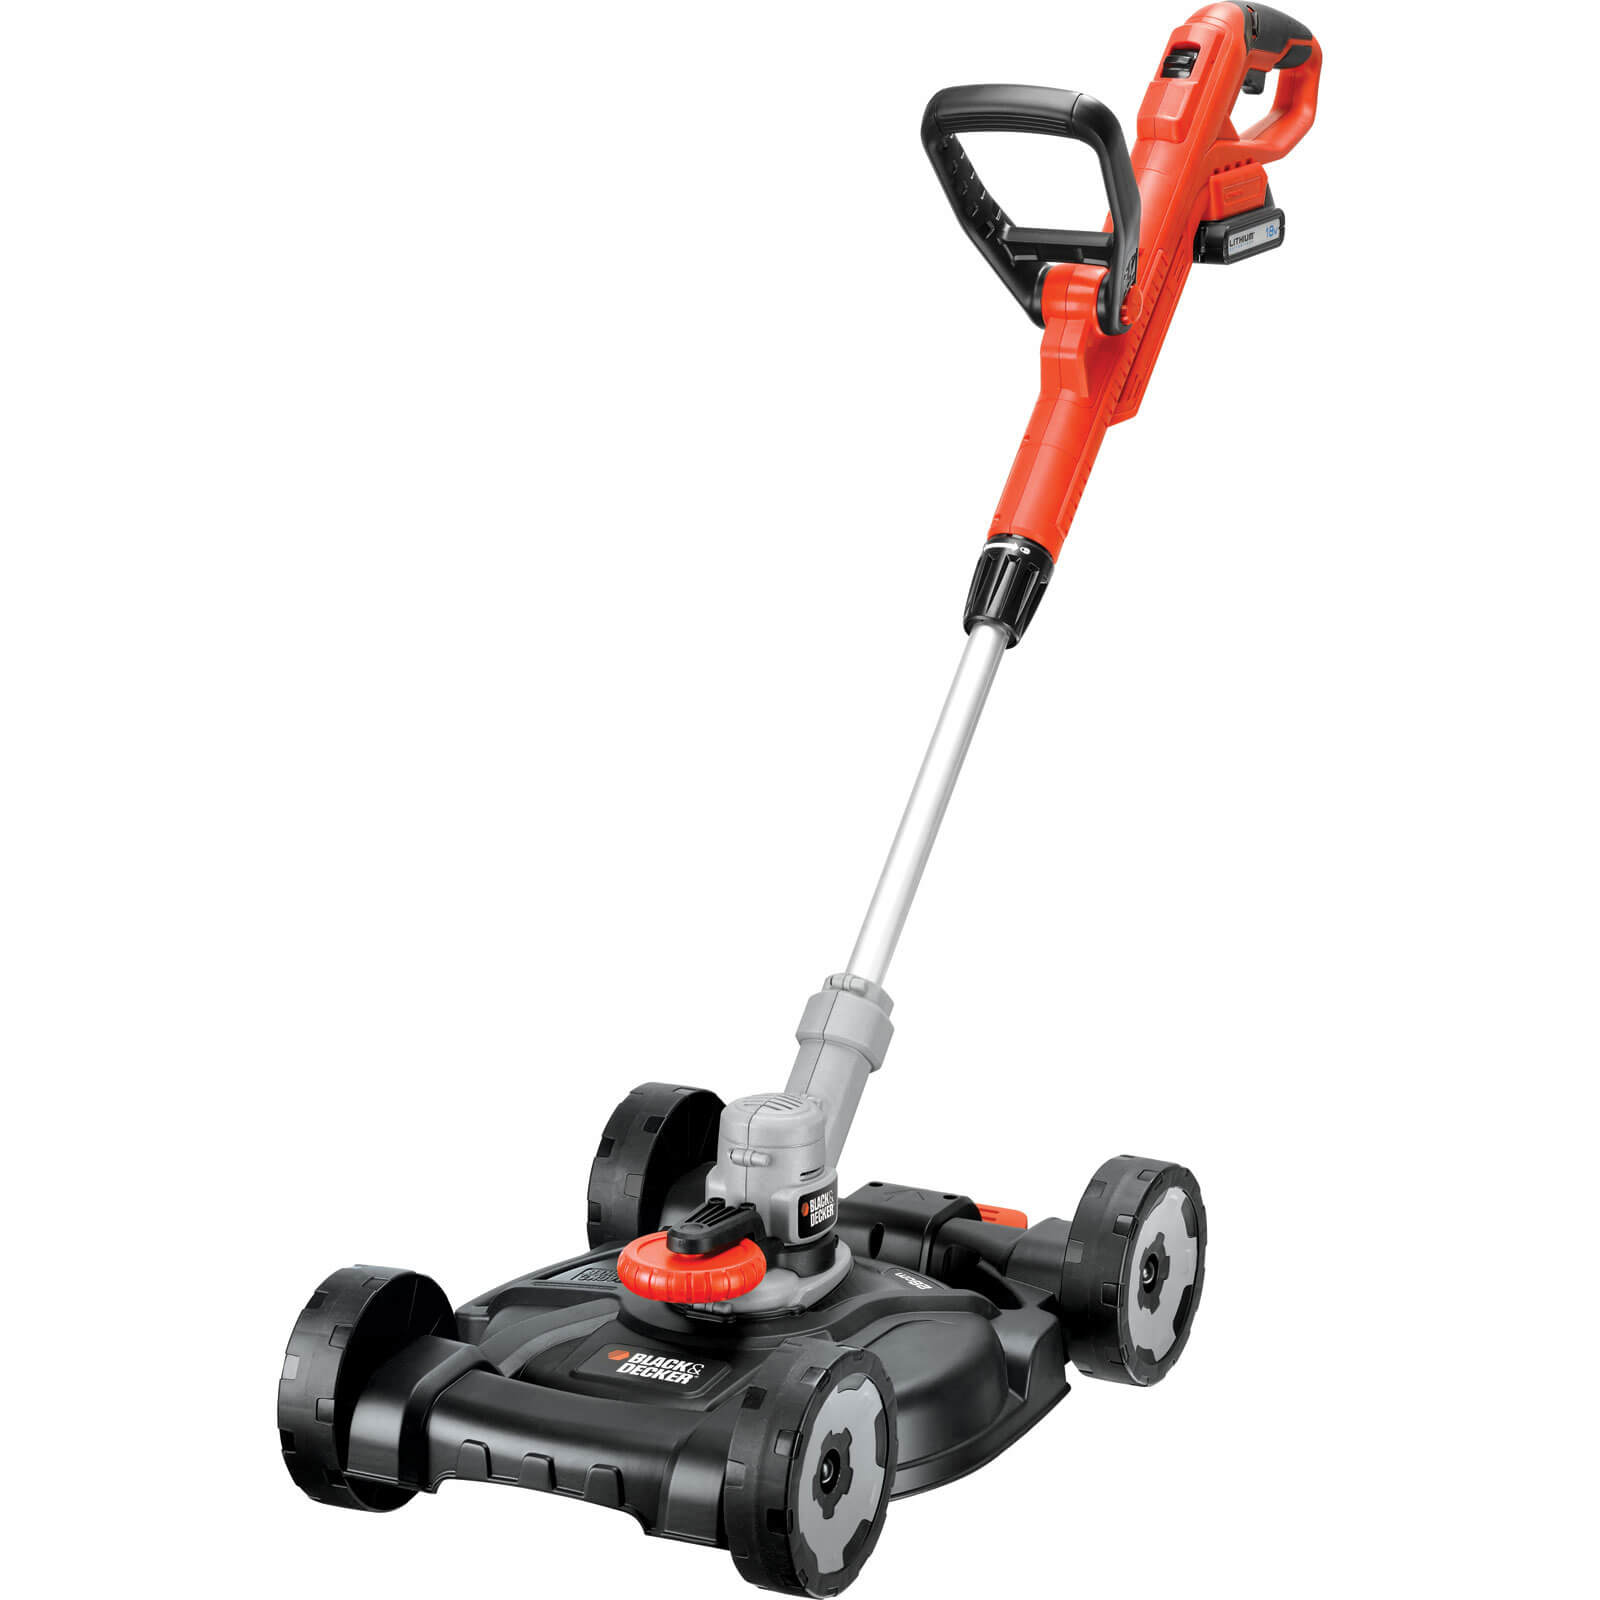 Black & Decker STC1820CM 18v Cordless 3 in 1 Edger, Grass Trimmer & Lawn Mower 250mm Cut Width with 1 Lithium Ion Battery 2ah FREE Spare Spool & Line Worth £5.95